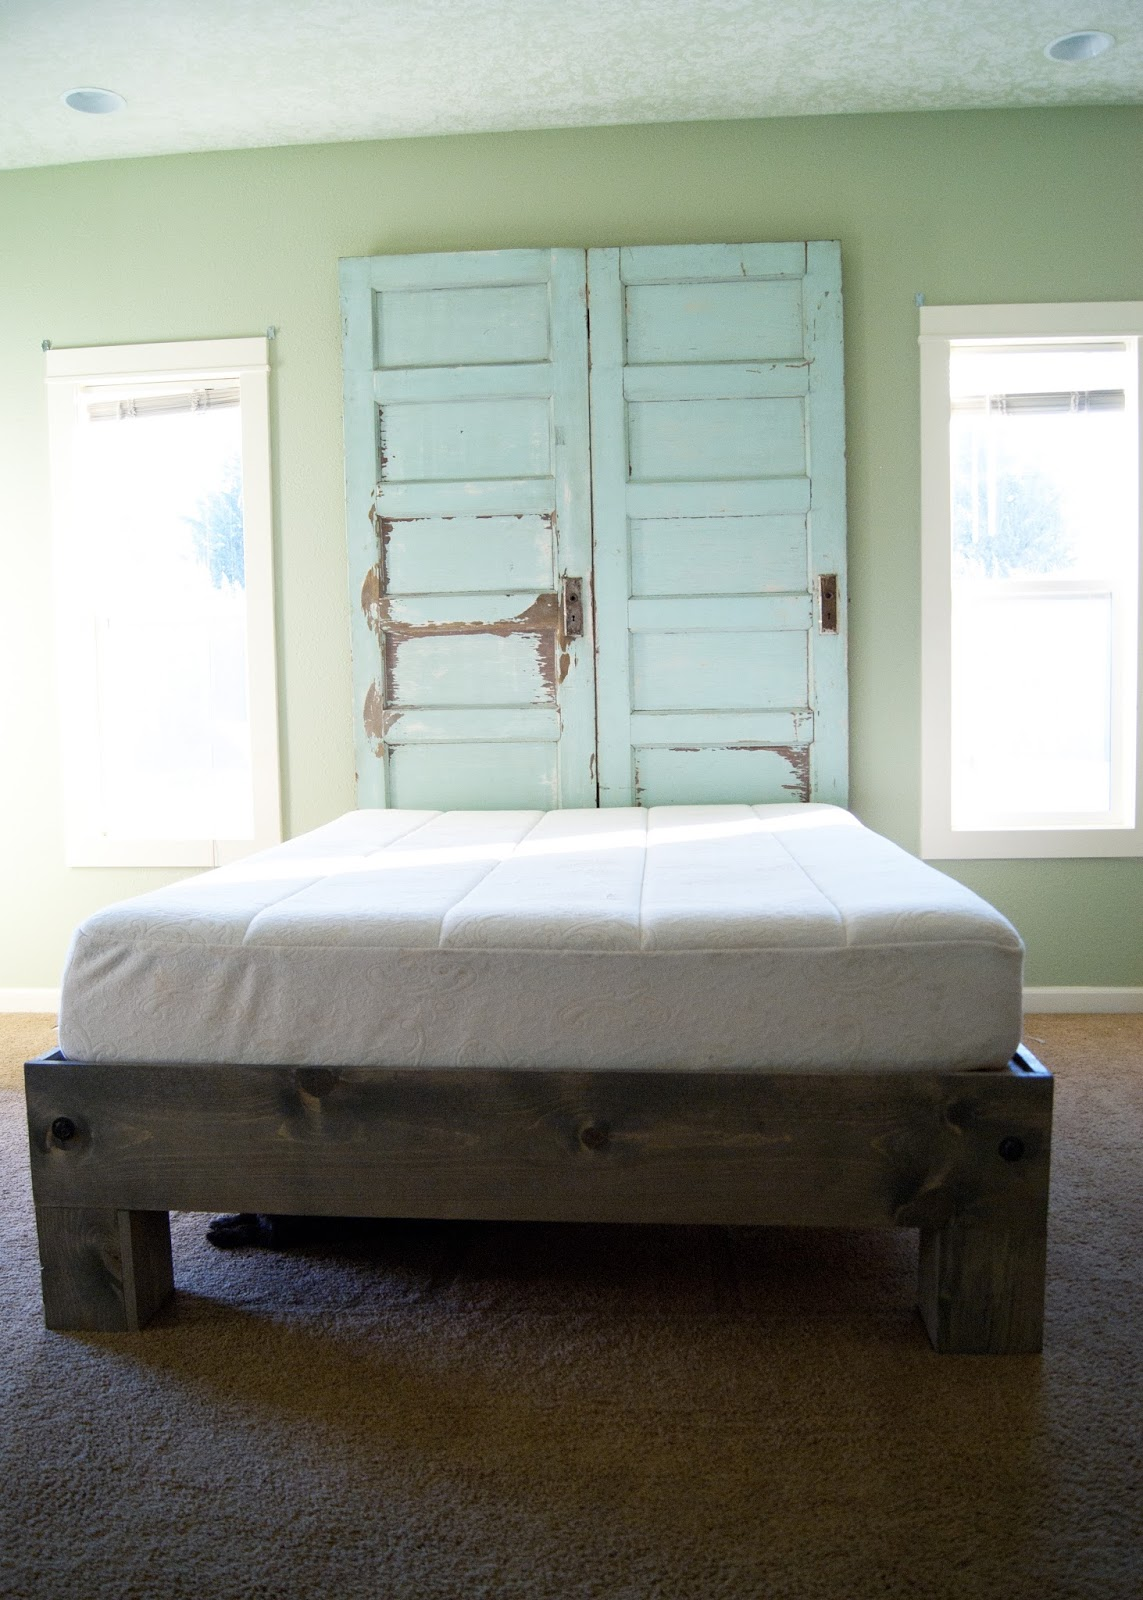 Platform bed and Old door headboard in mint green and weathered gray stain